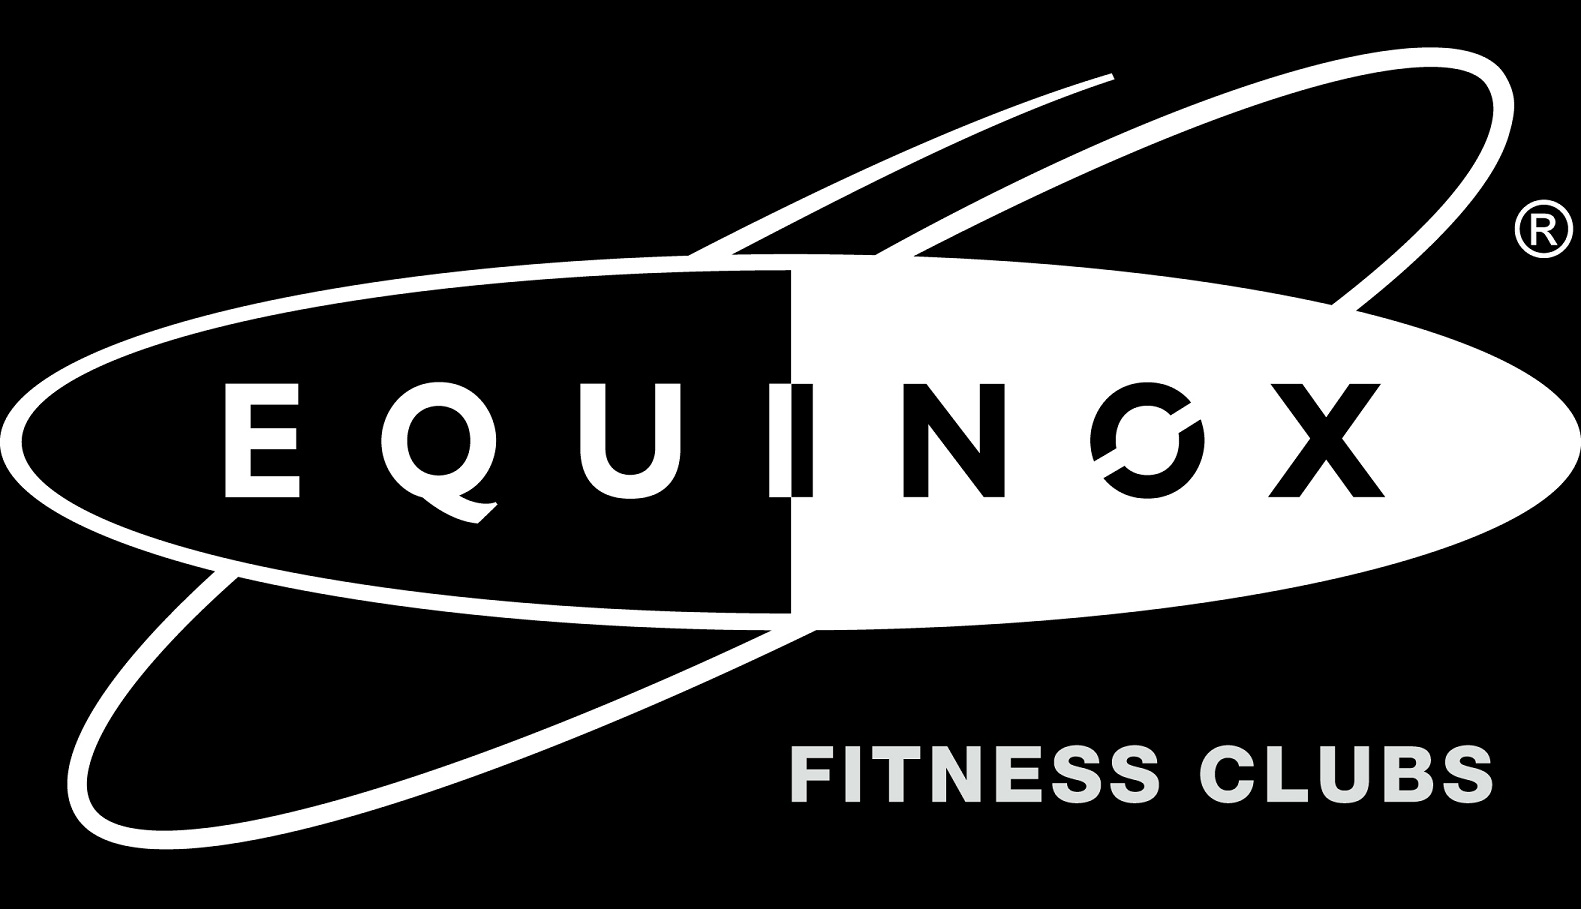 equinox-fitness-club-logo1.jpg